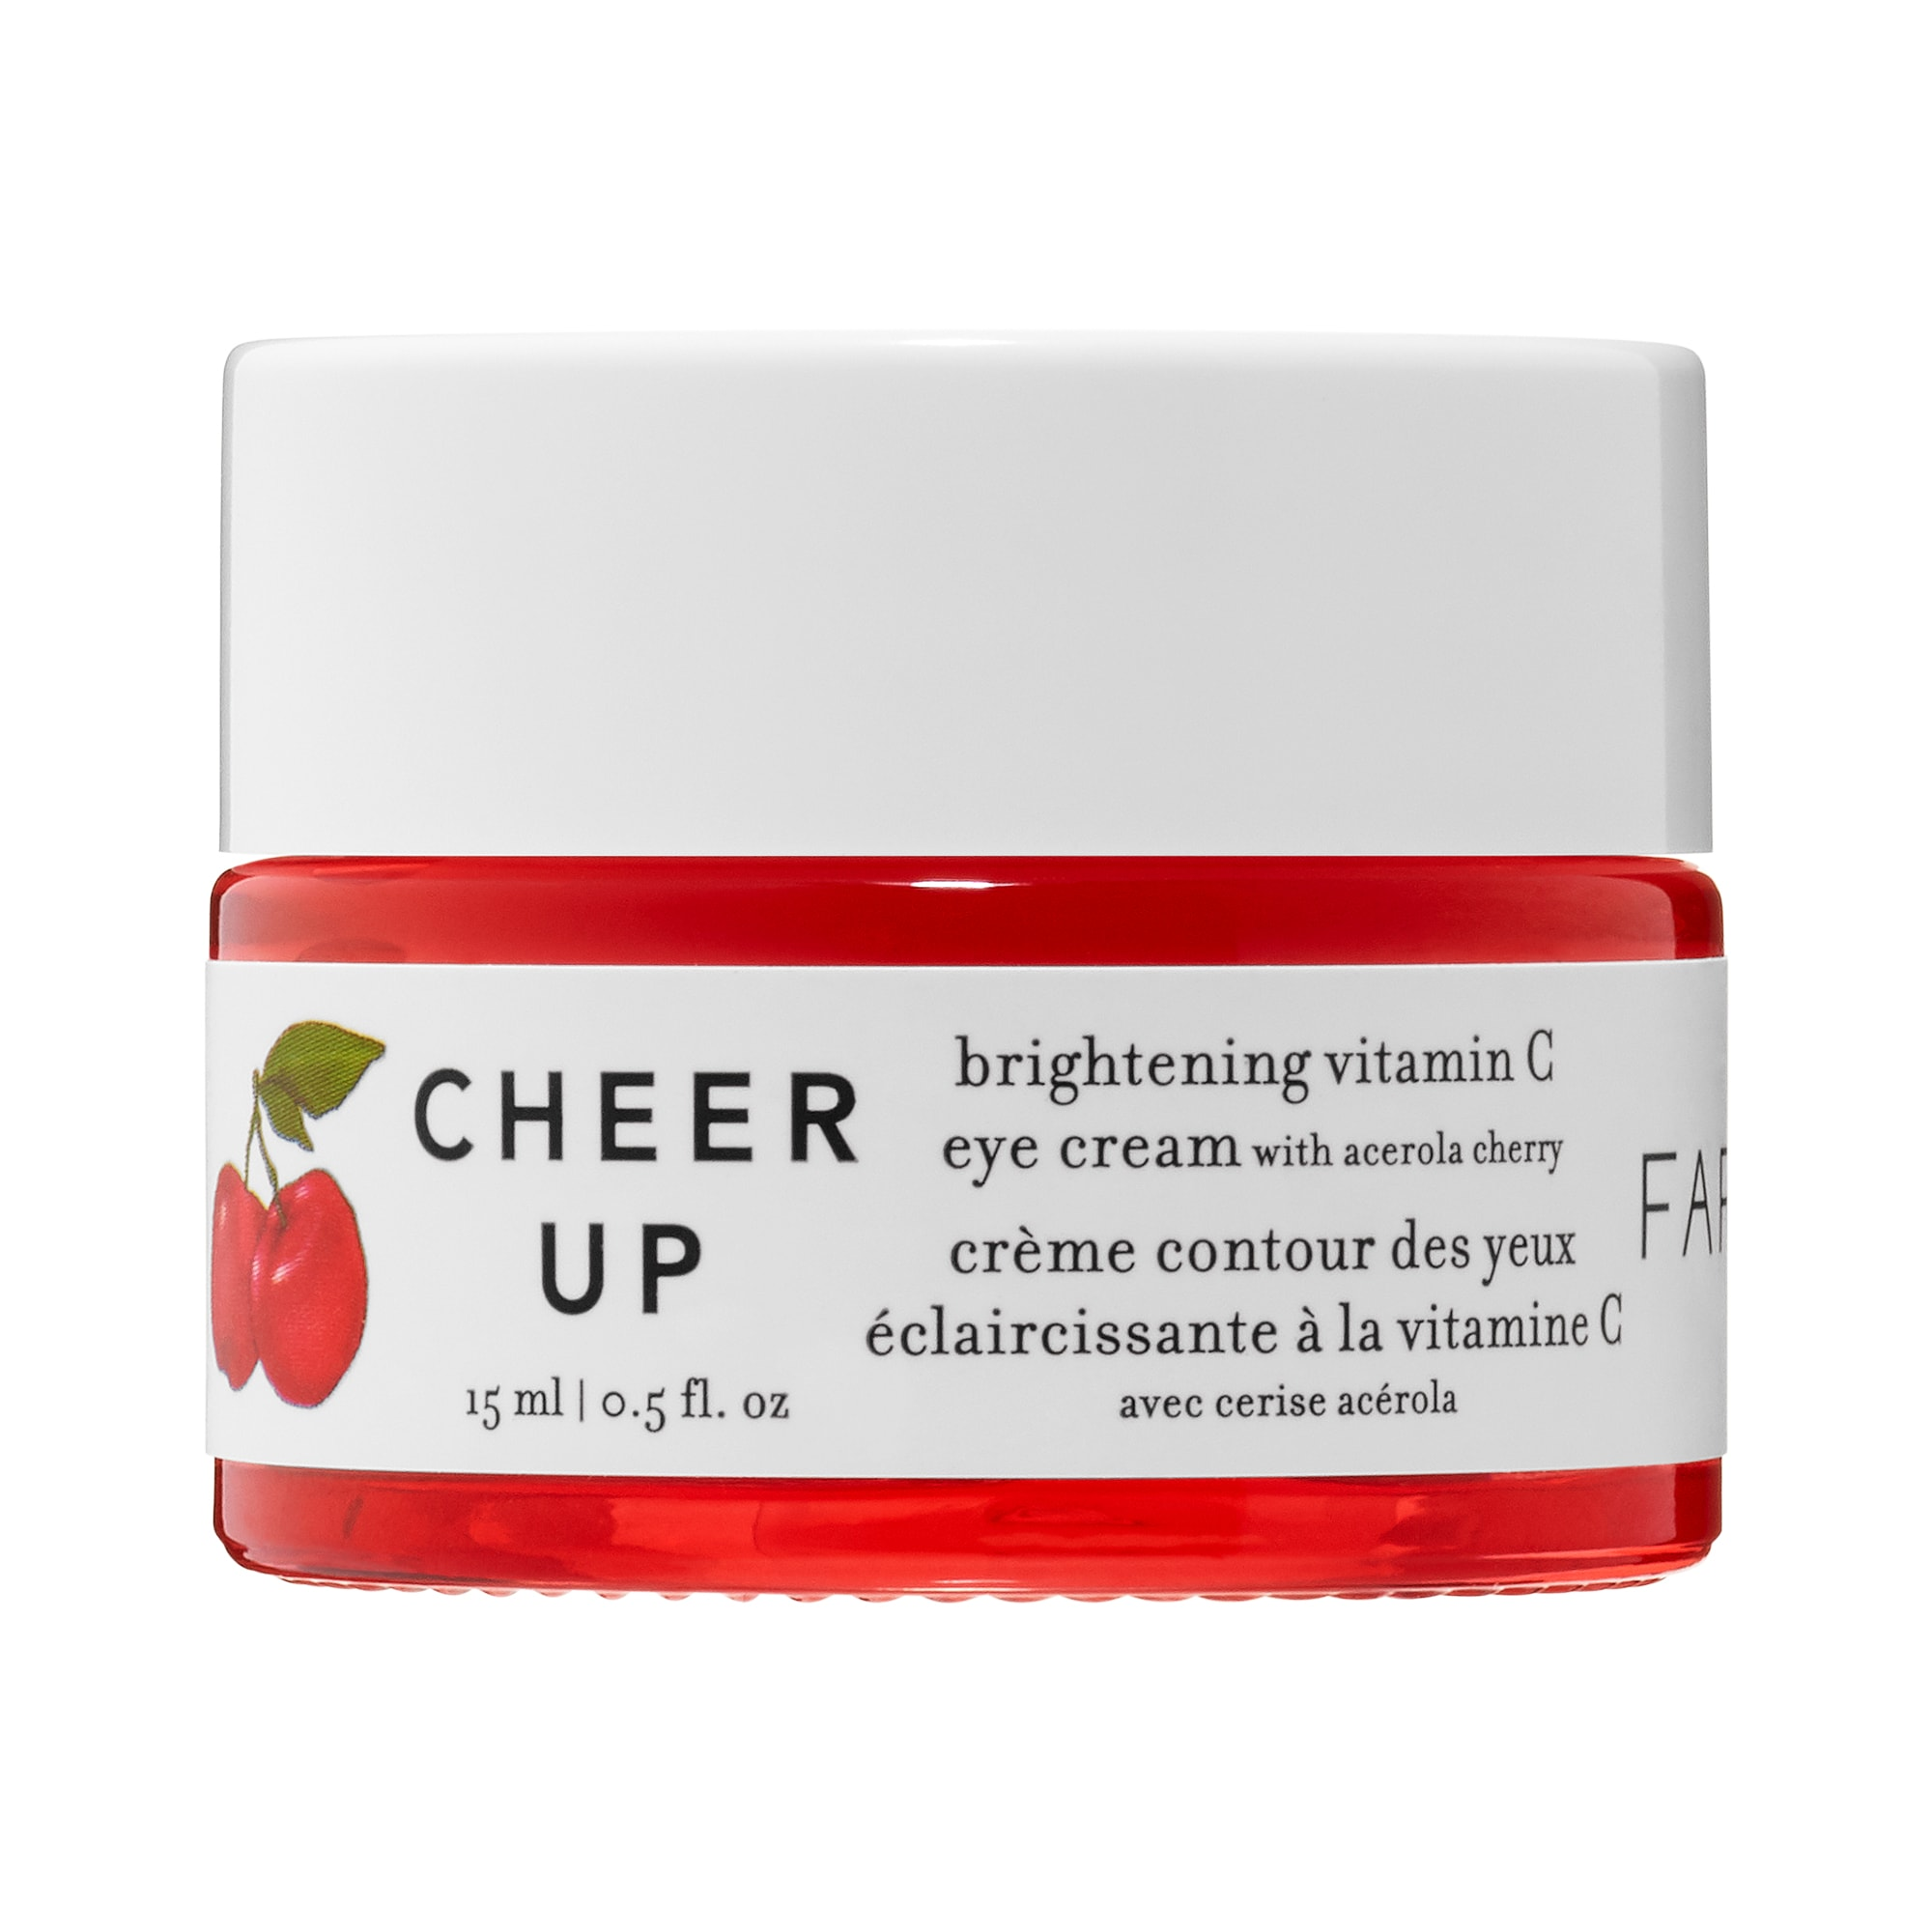 Farmacy - Cheer Up Brightening Vitamin C Eye Cream with Acerola Cherry